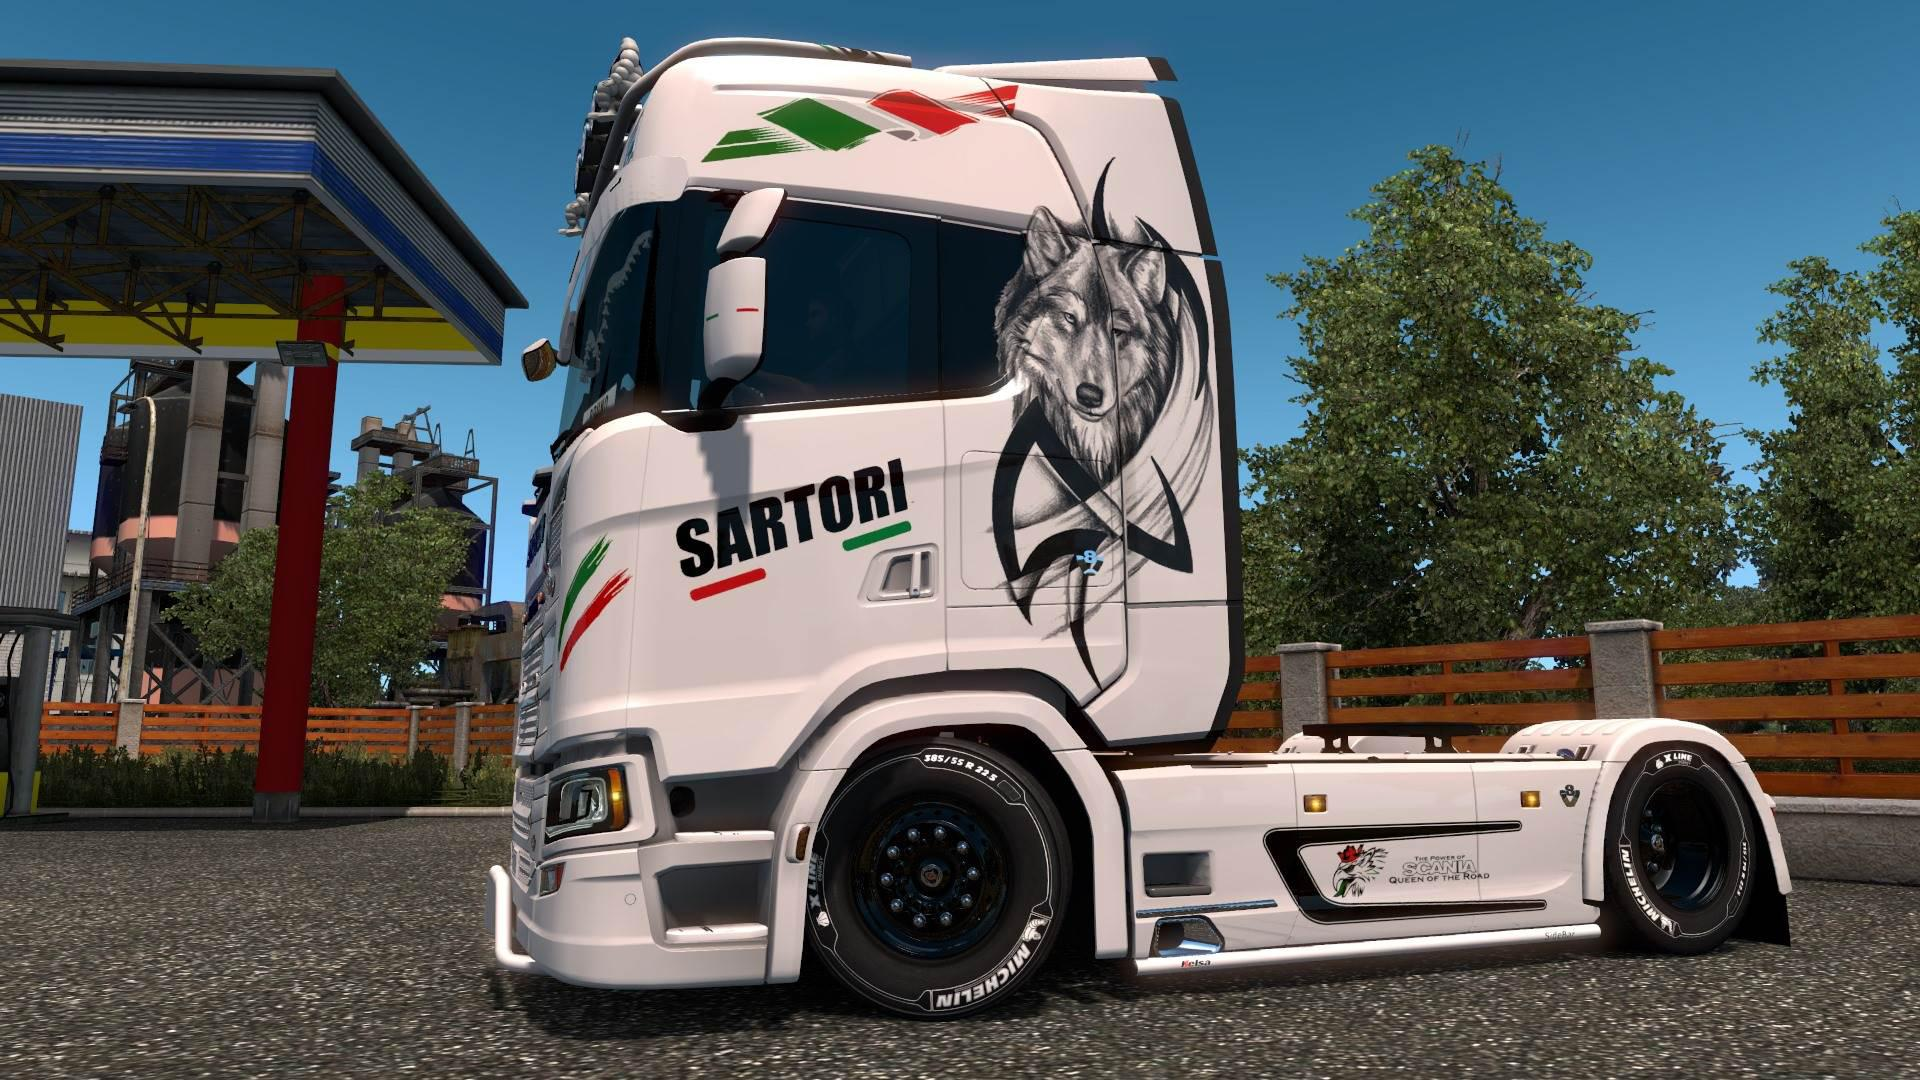 ETS2 - Volvo FH 2012 and Scania S Sartori Edition Skin V1.0 (1.35.X)